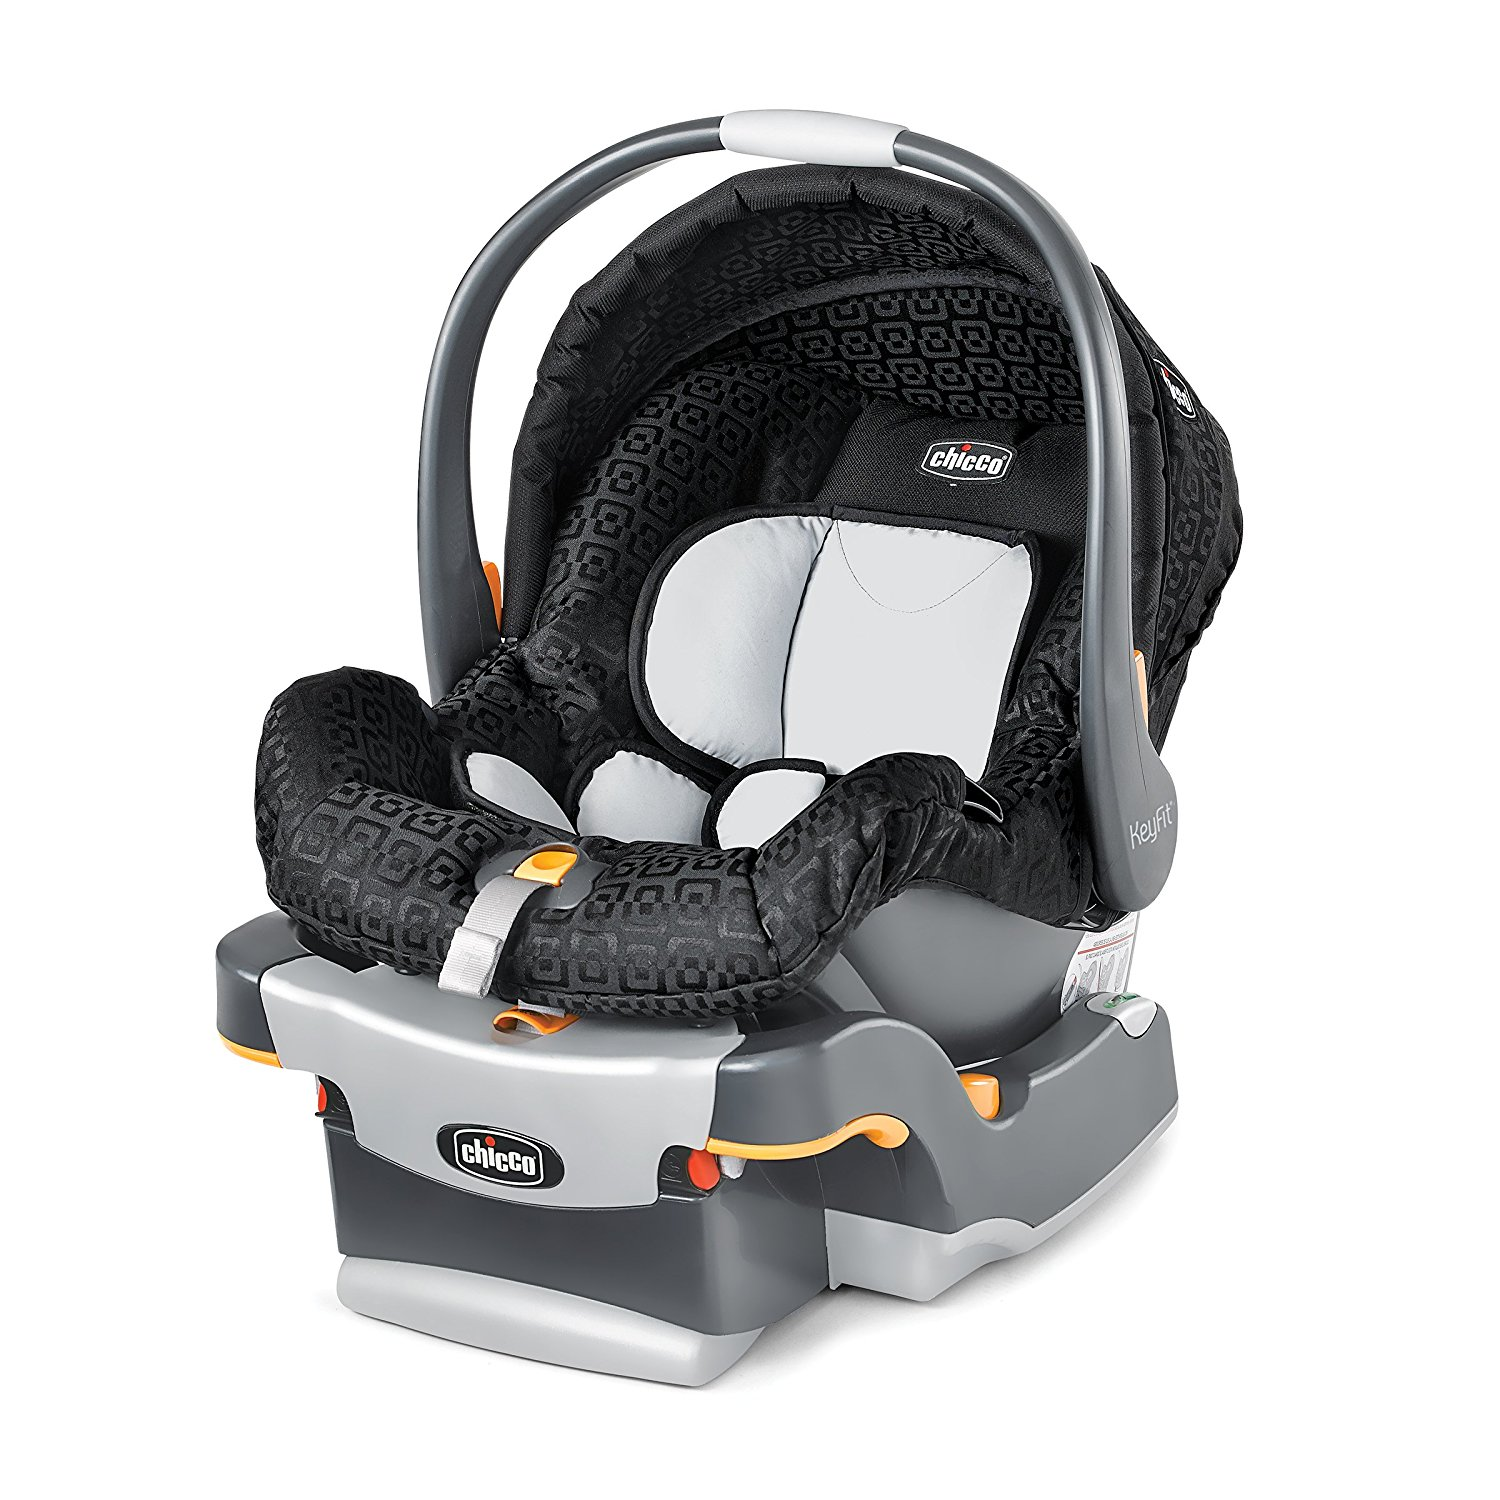 Best Baby Gear and Baby Product Reviews from a Real Mom